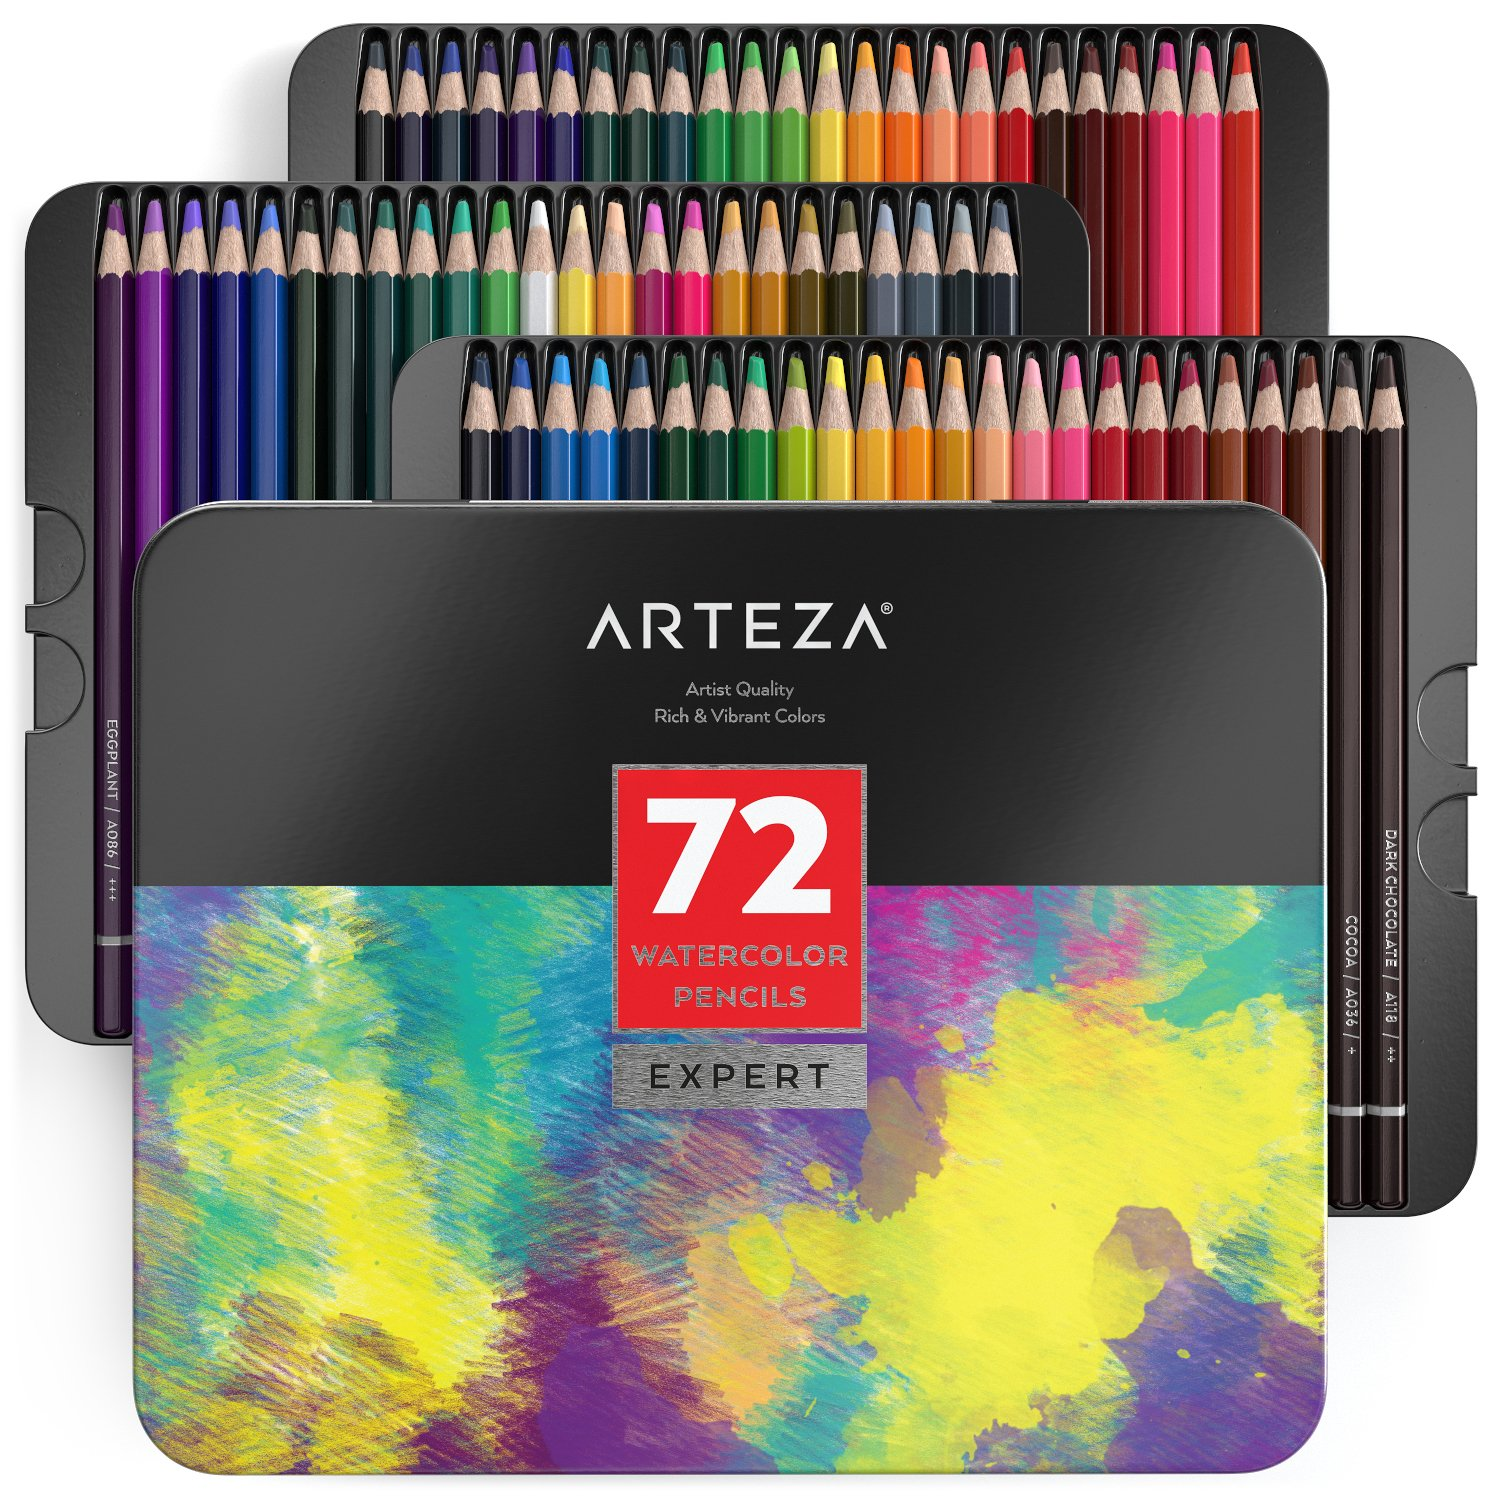 arteza professional watercolor